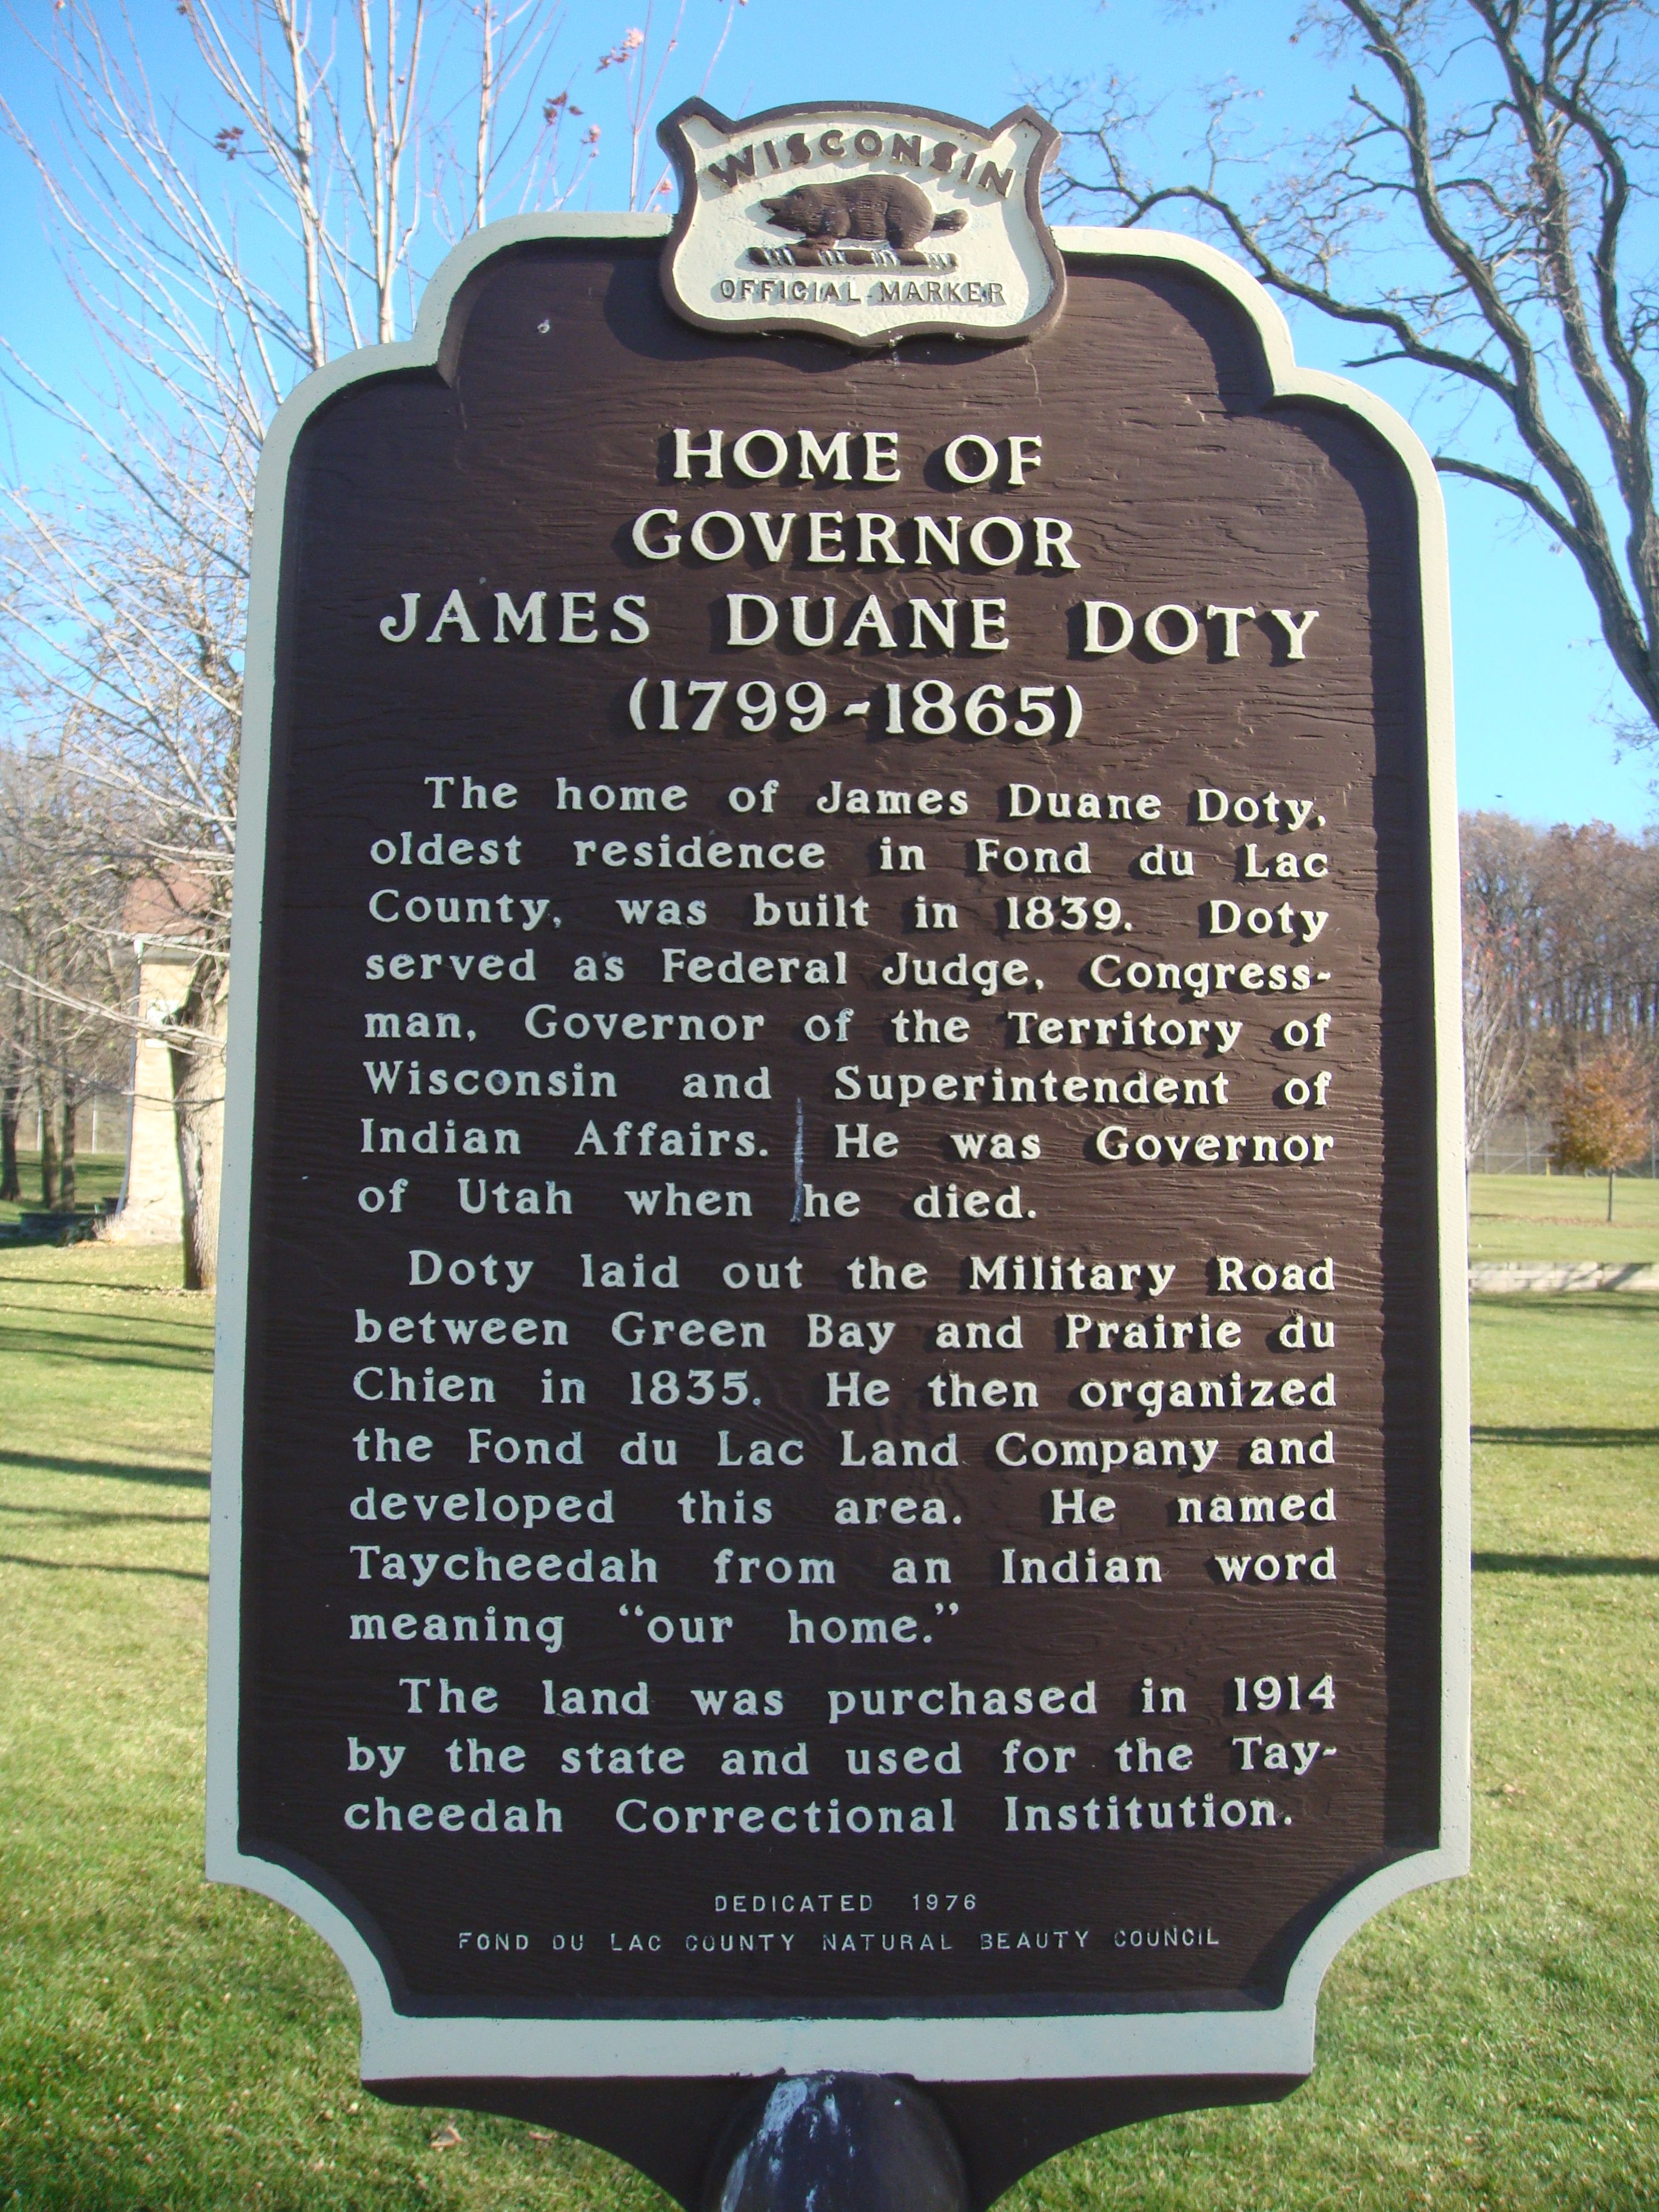 Home of Governor James Duane Doty Marker